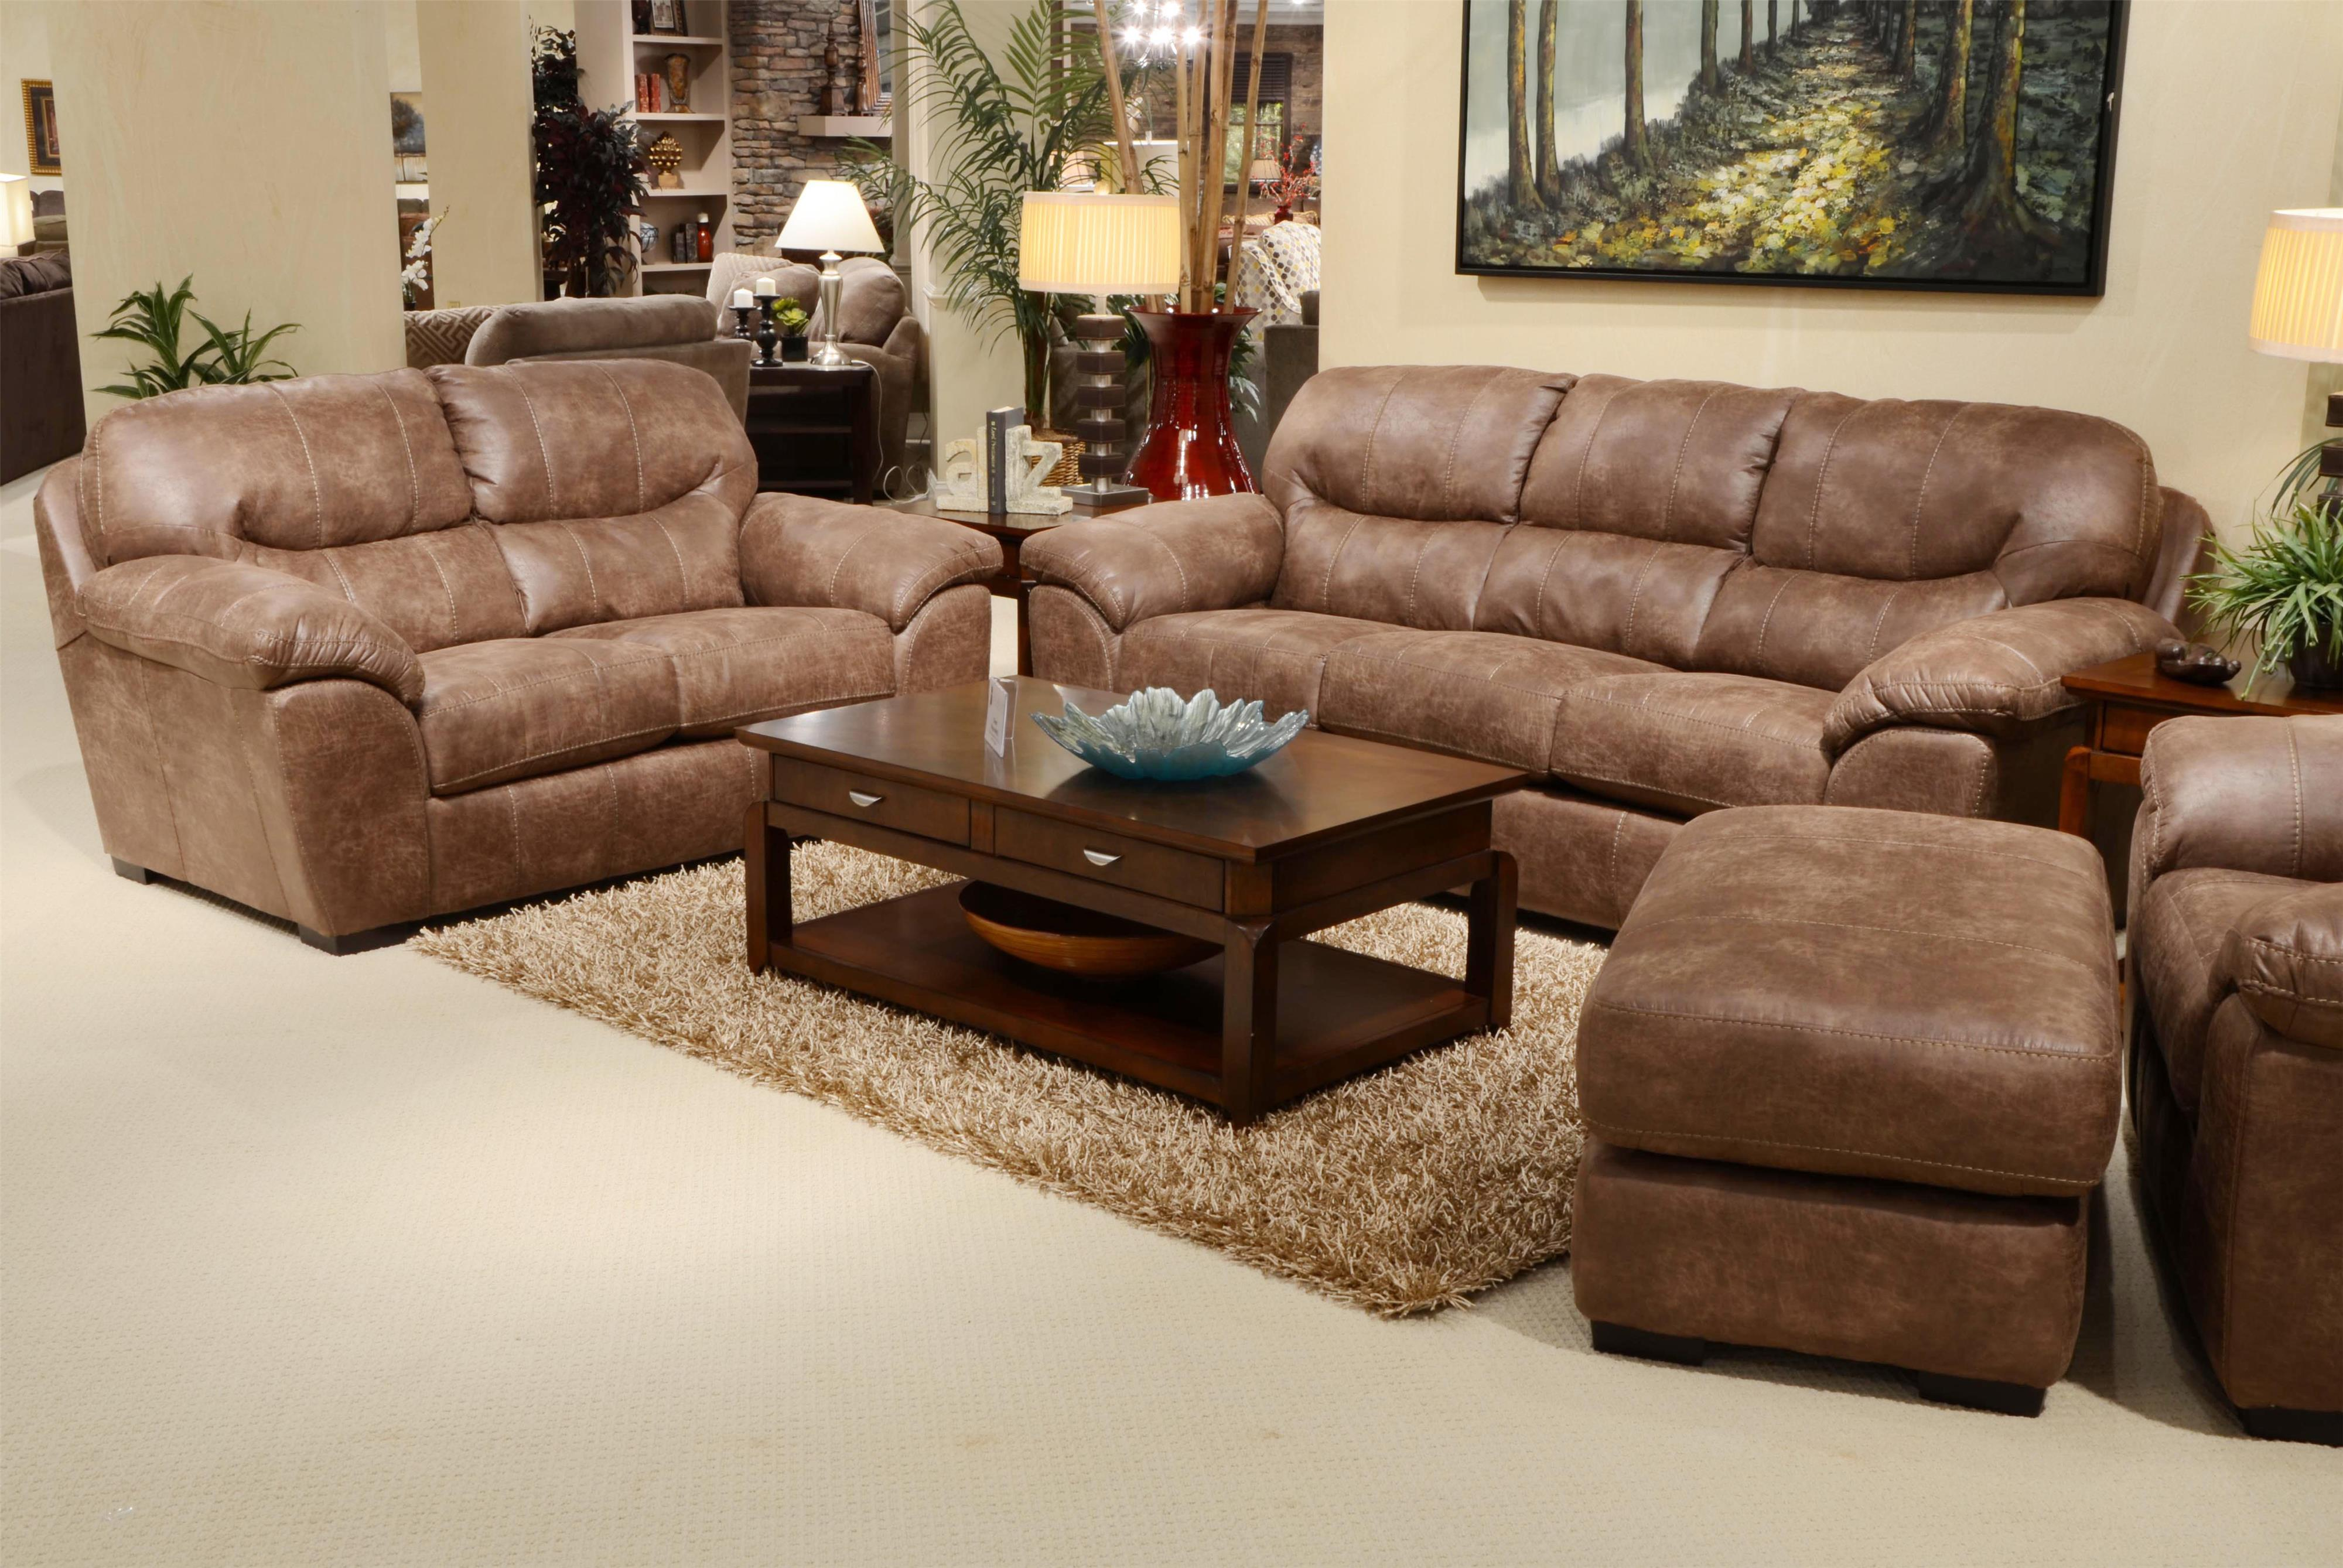 Faux leather sleeper sofa for living rooms and family rooms by jackson furniture wolf and for Faux leather living room furniture